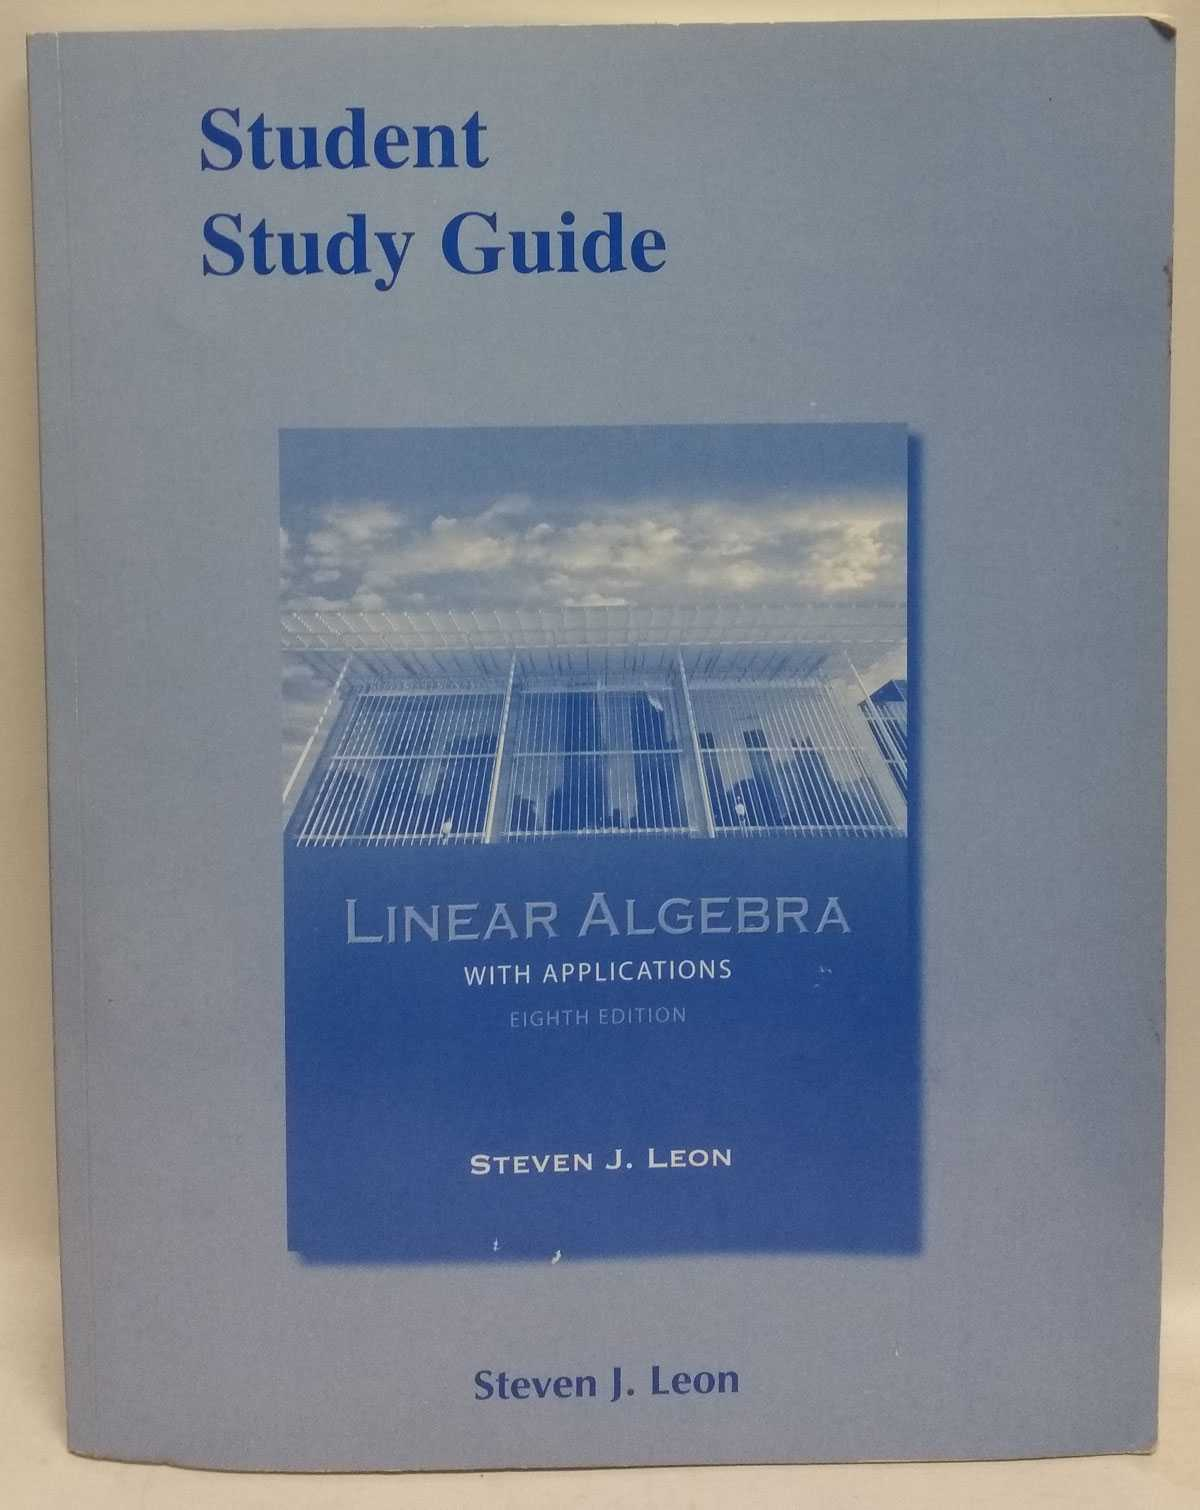 Linear Algebra with Applications: Student Study Guide, Steven J. Leon